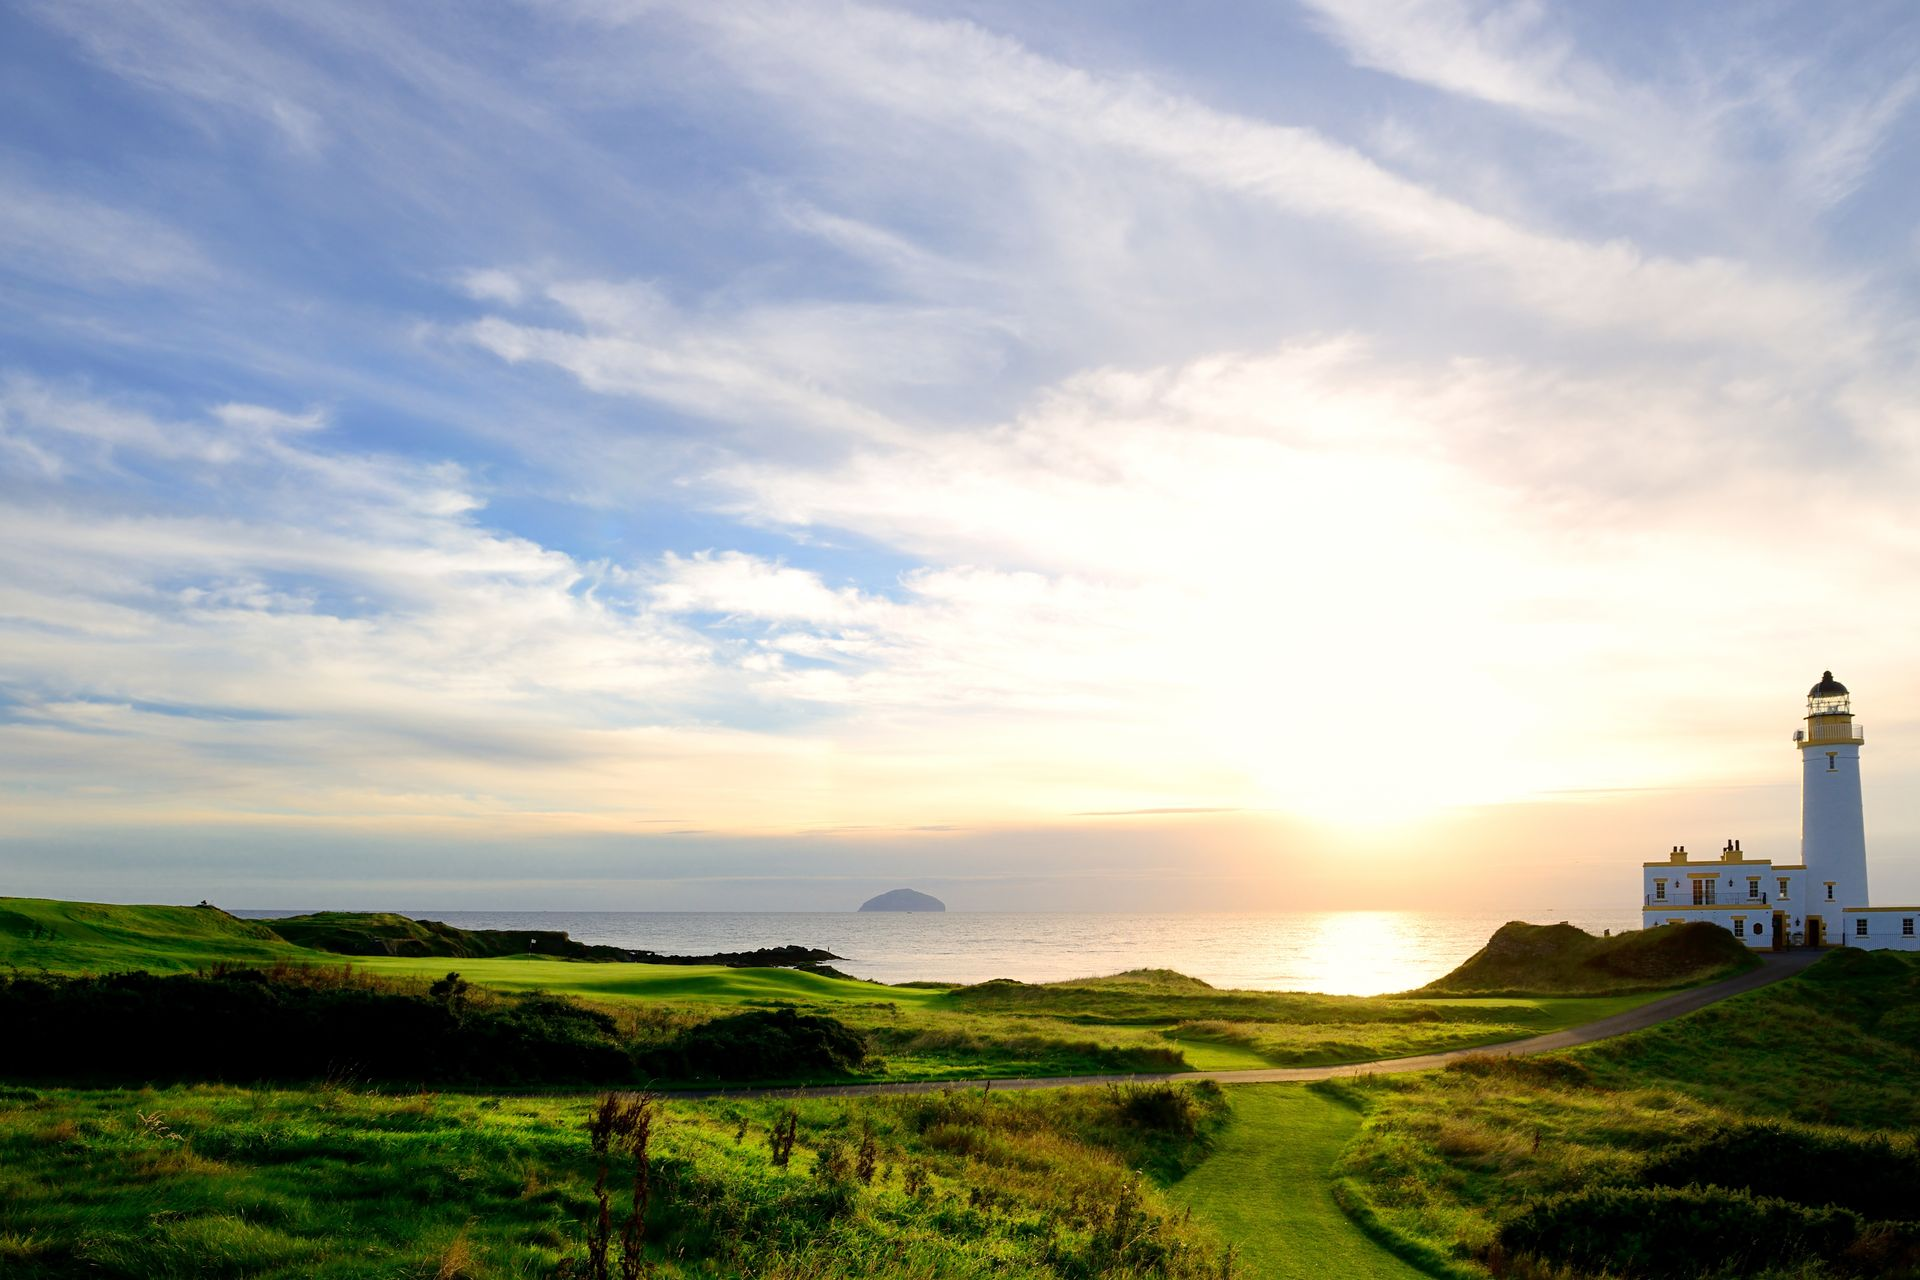 Trump Turnberry - The Ailsa Course